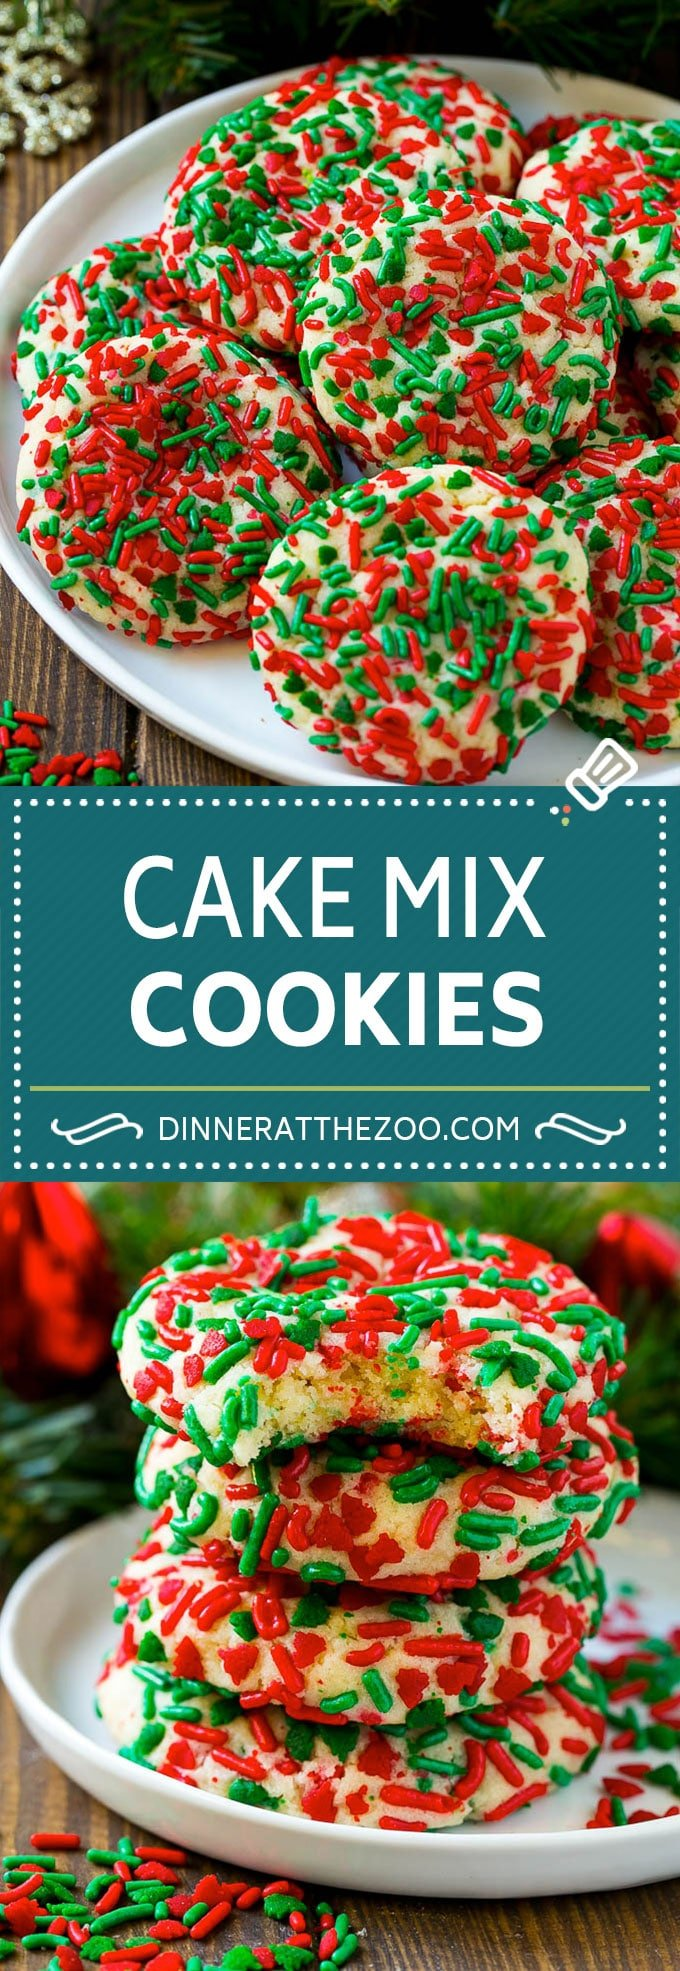 Cake Mix Cookies Dinner At The Zoo